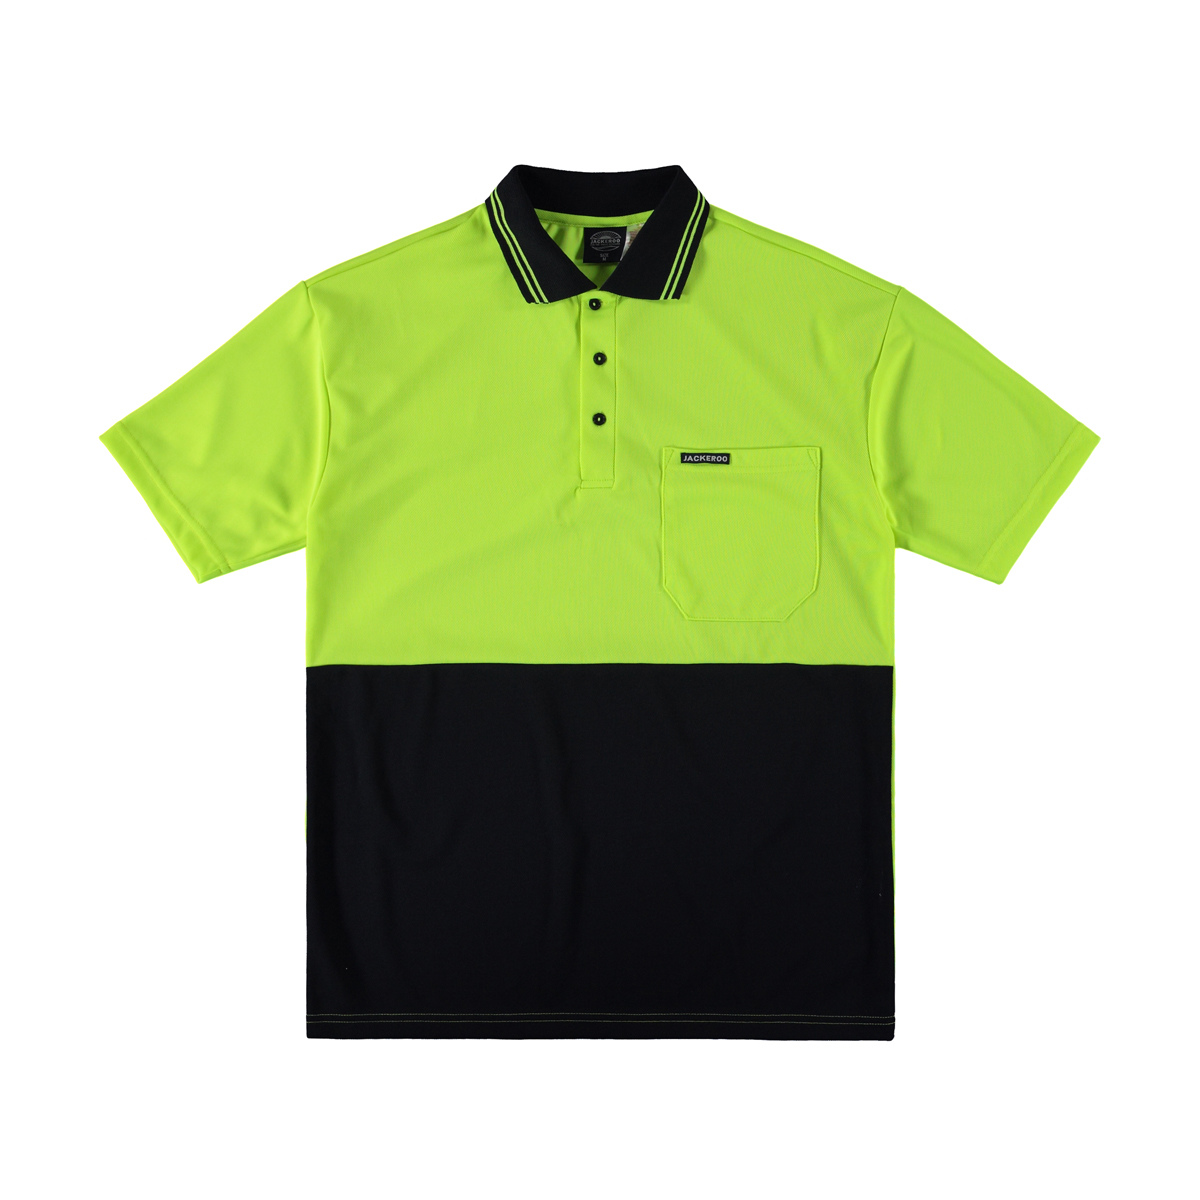 b37836c6d Buy red polo shirt kmart - 63% OFF! Share discount